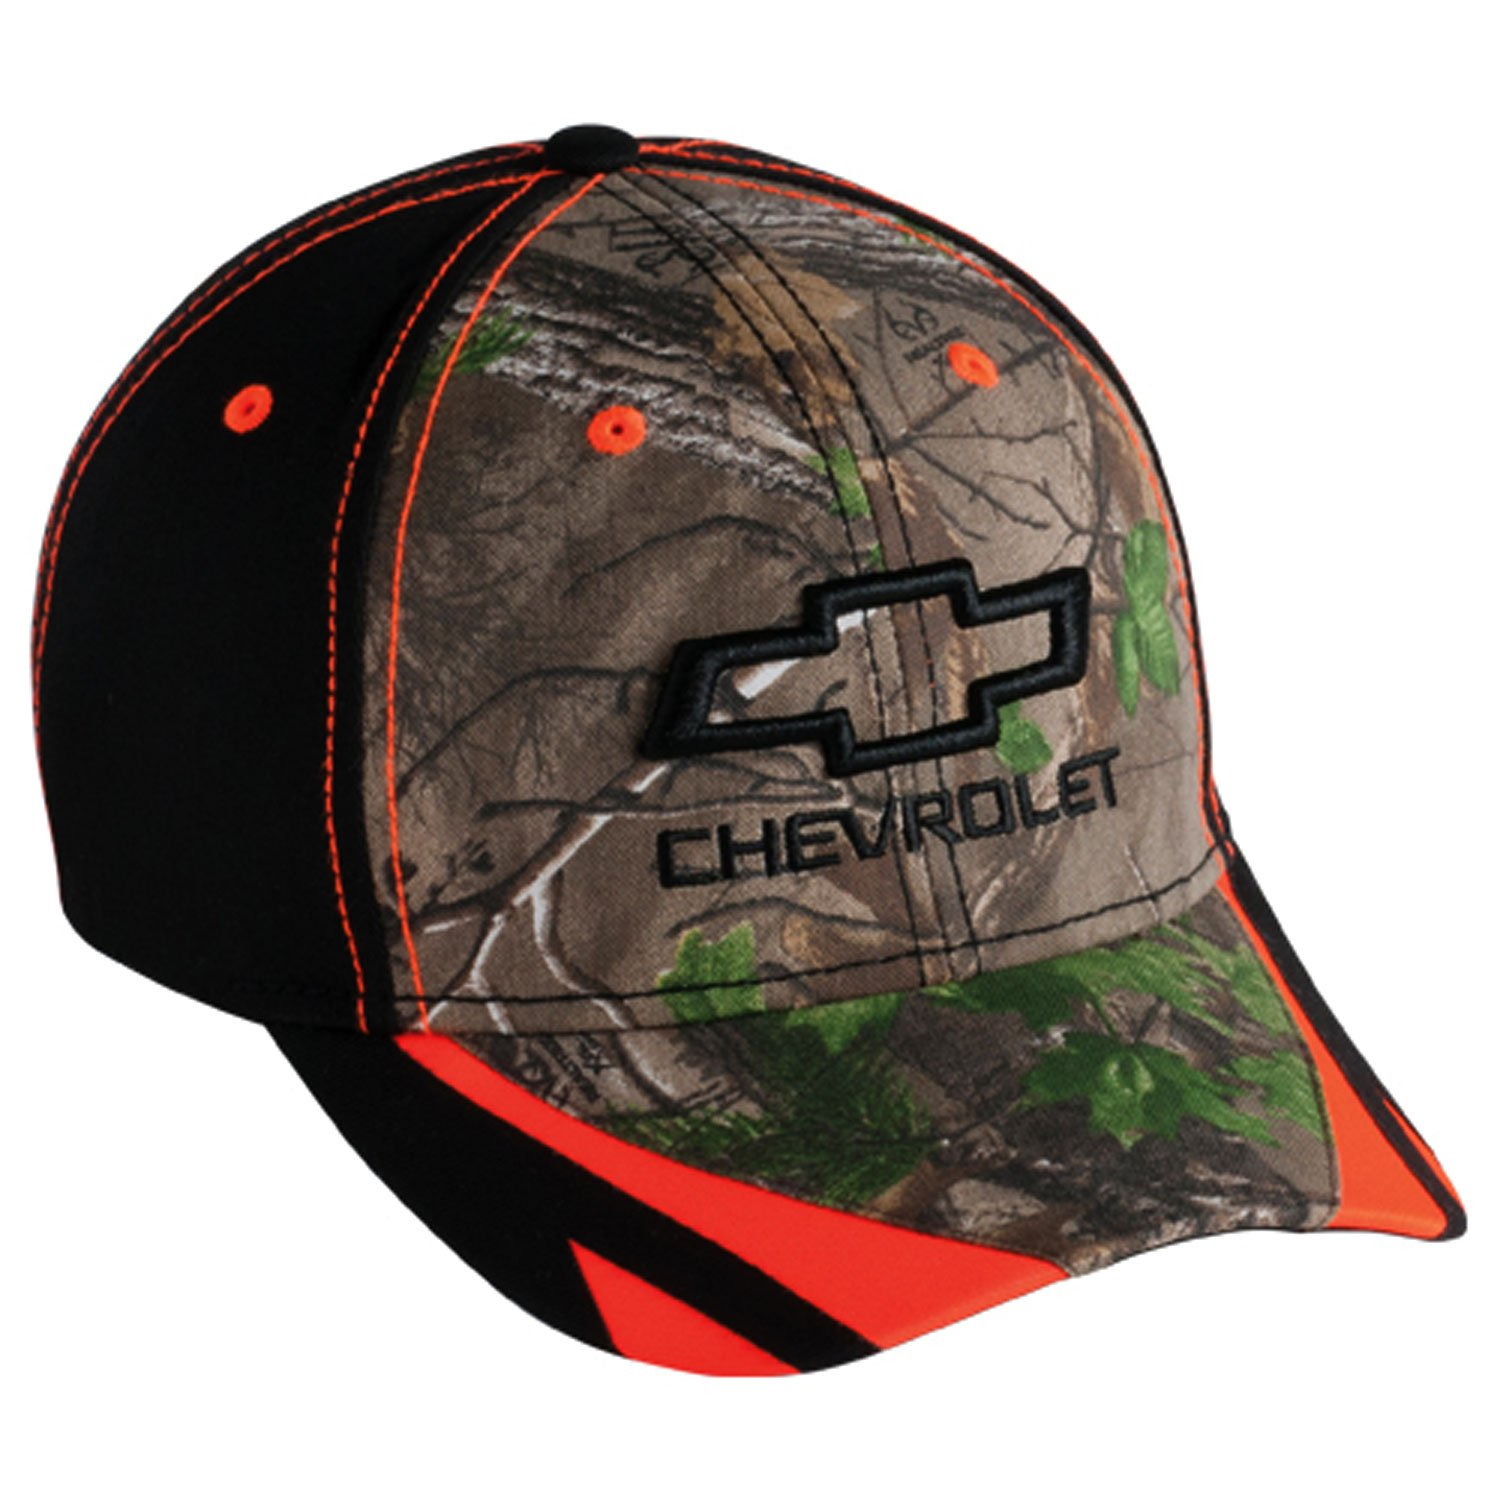 Bundle with Driving Style Decal Gregs Automotive Chevrolet Chevy Realtree Camouflage Camo Hap Cap